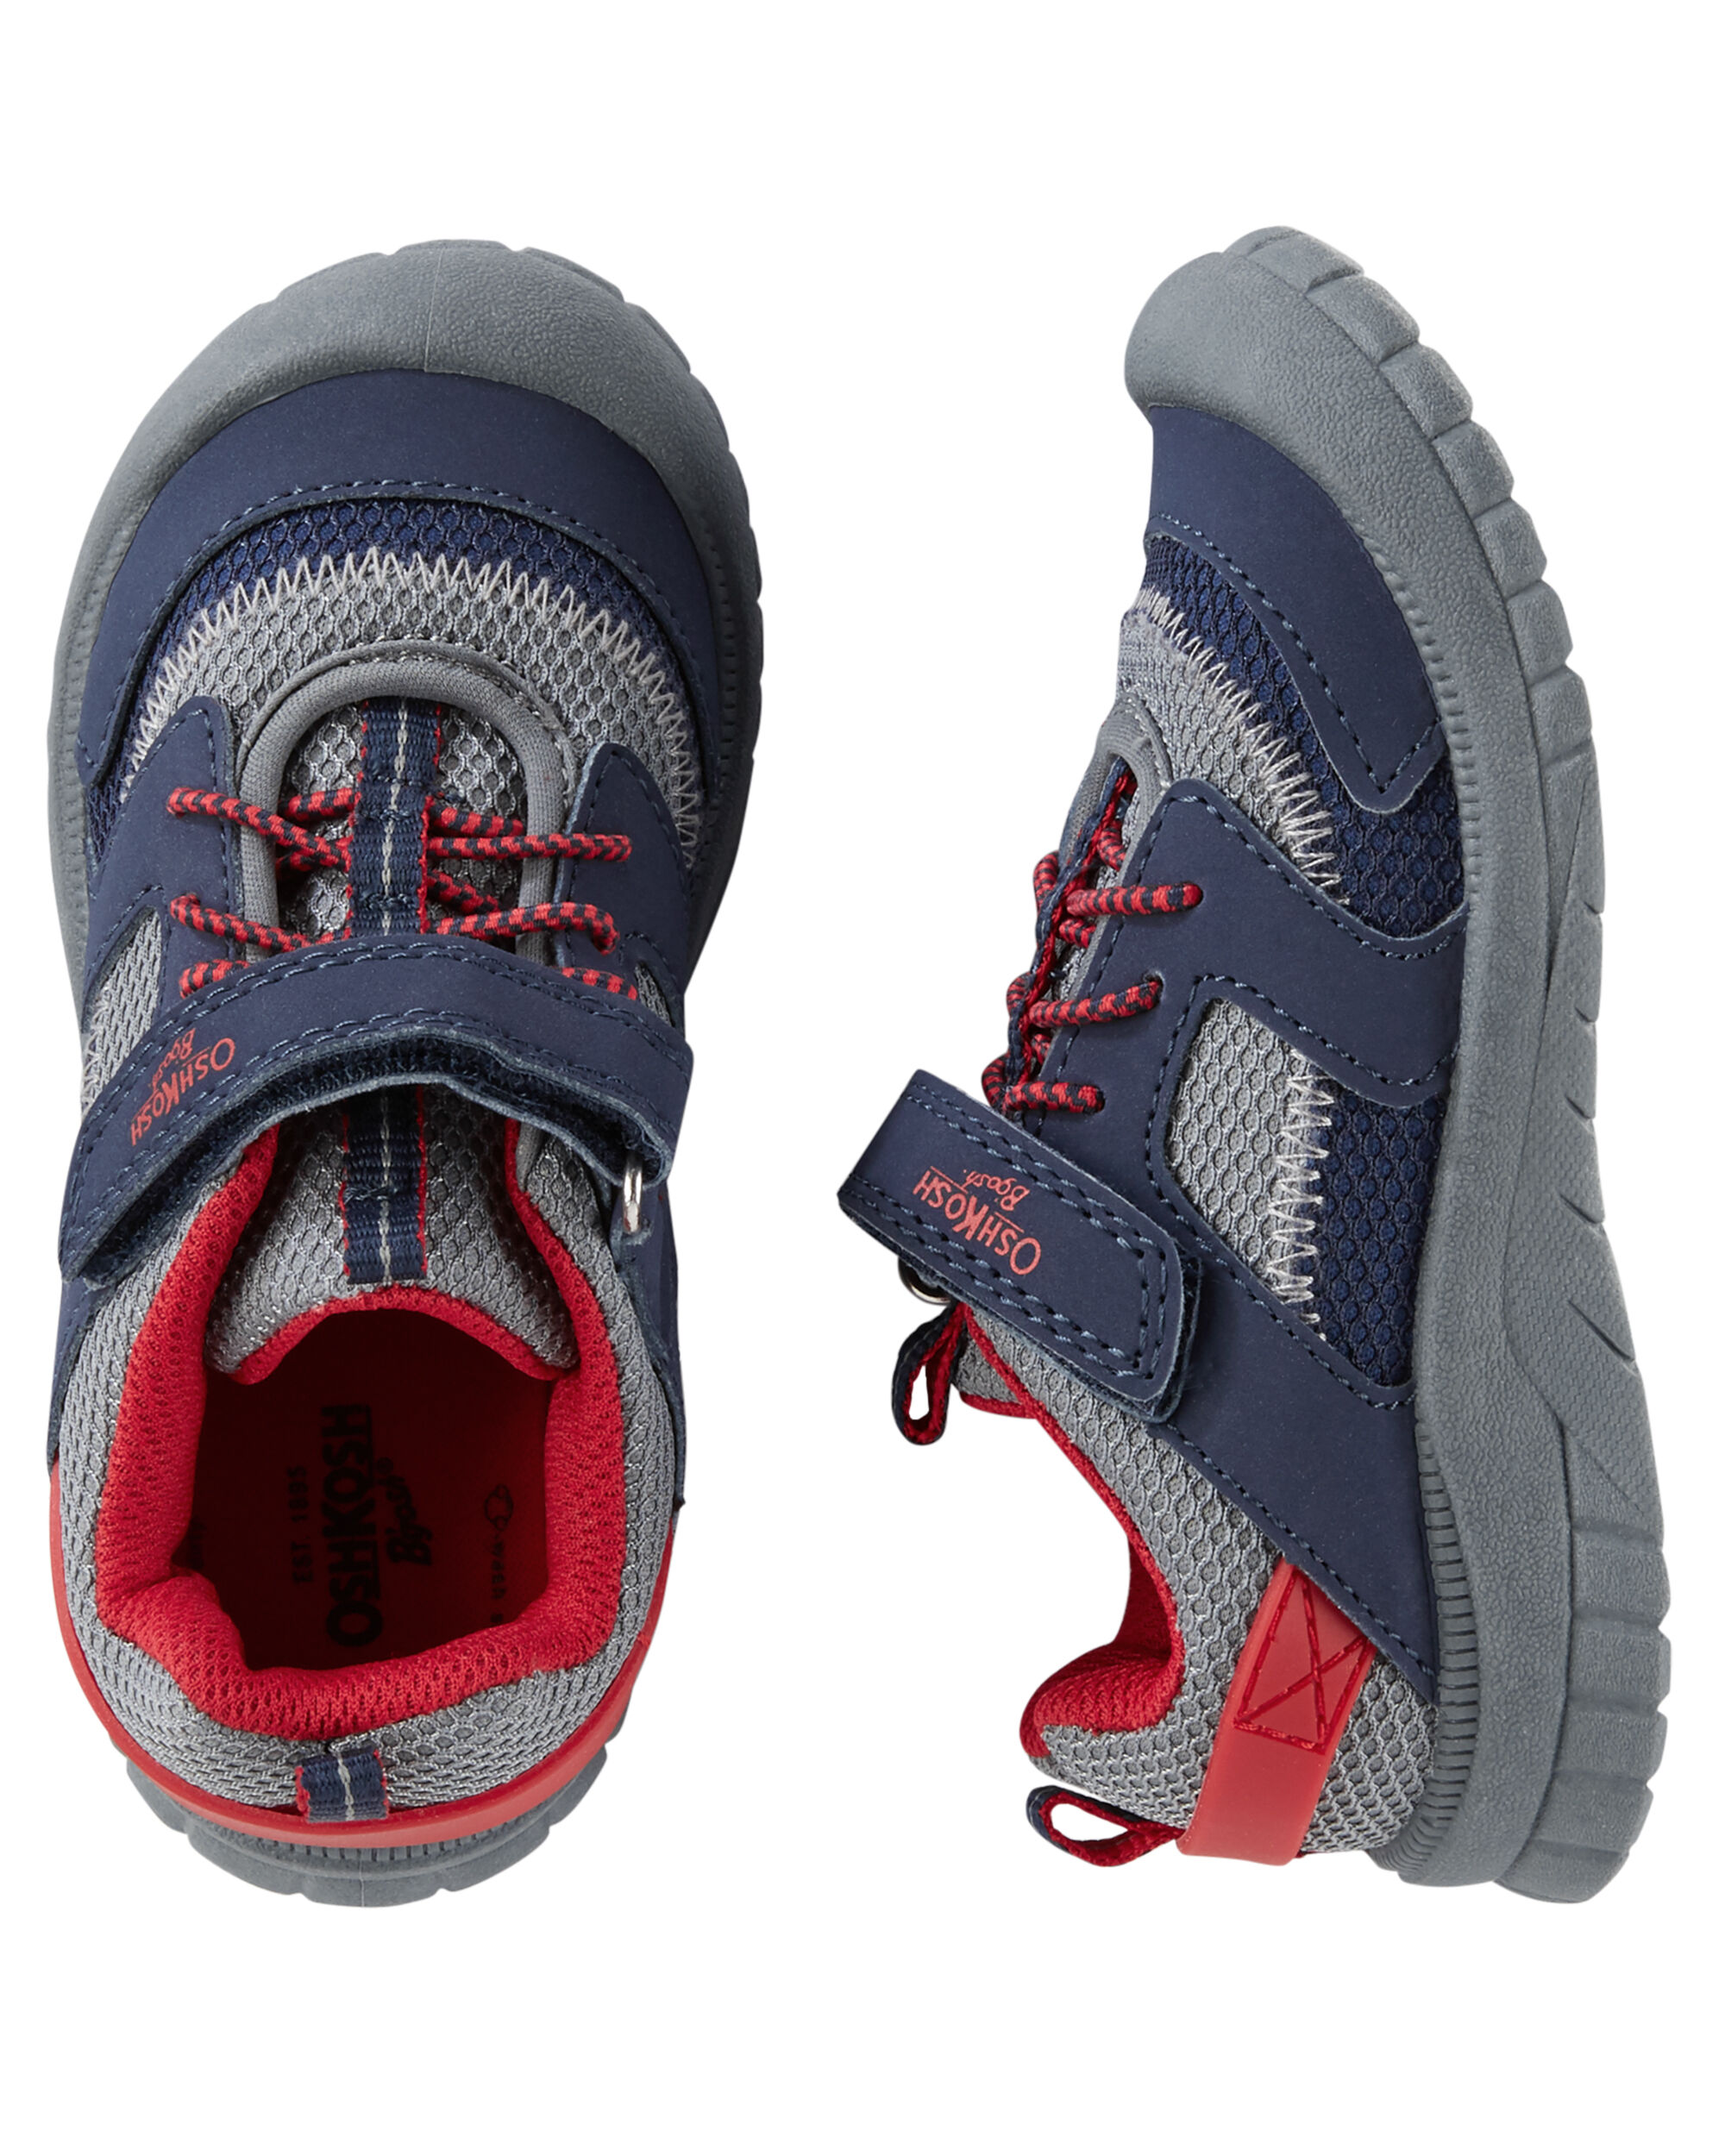 Carter/'s Kids Knight Boys High Tip Sneakers Navy NWT Size 9